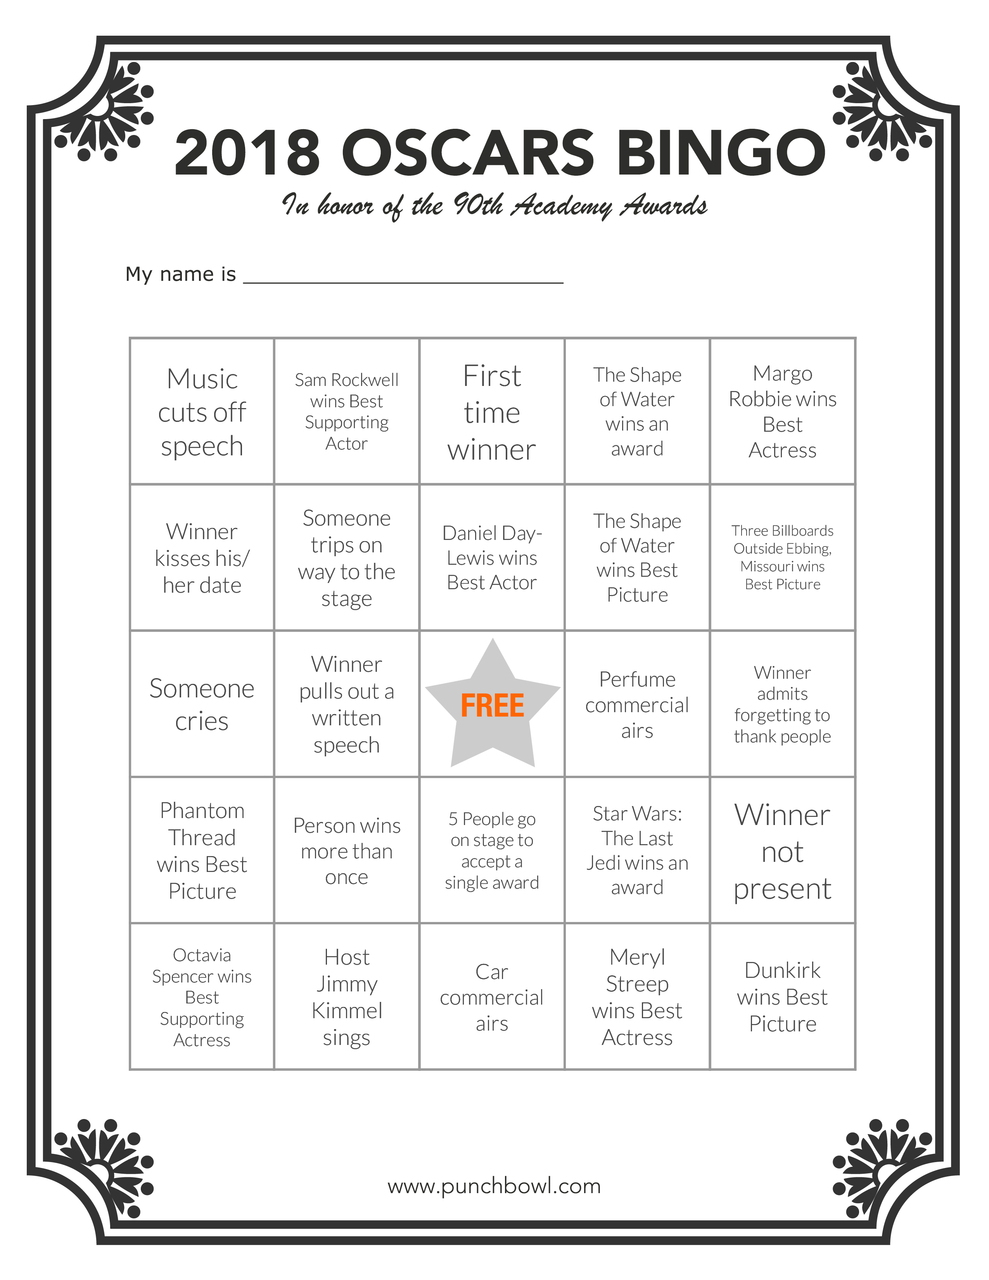 Oscars Party Planning Guide: Free Printable Oscars Bingo